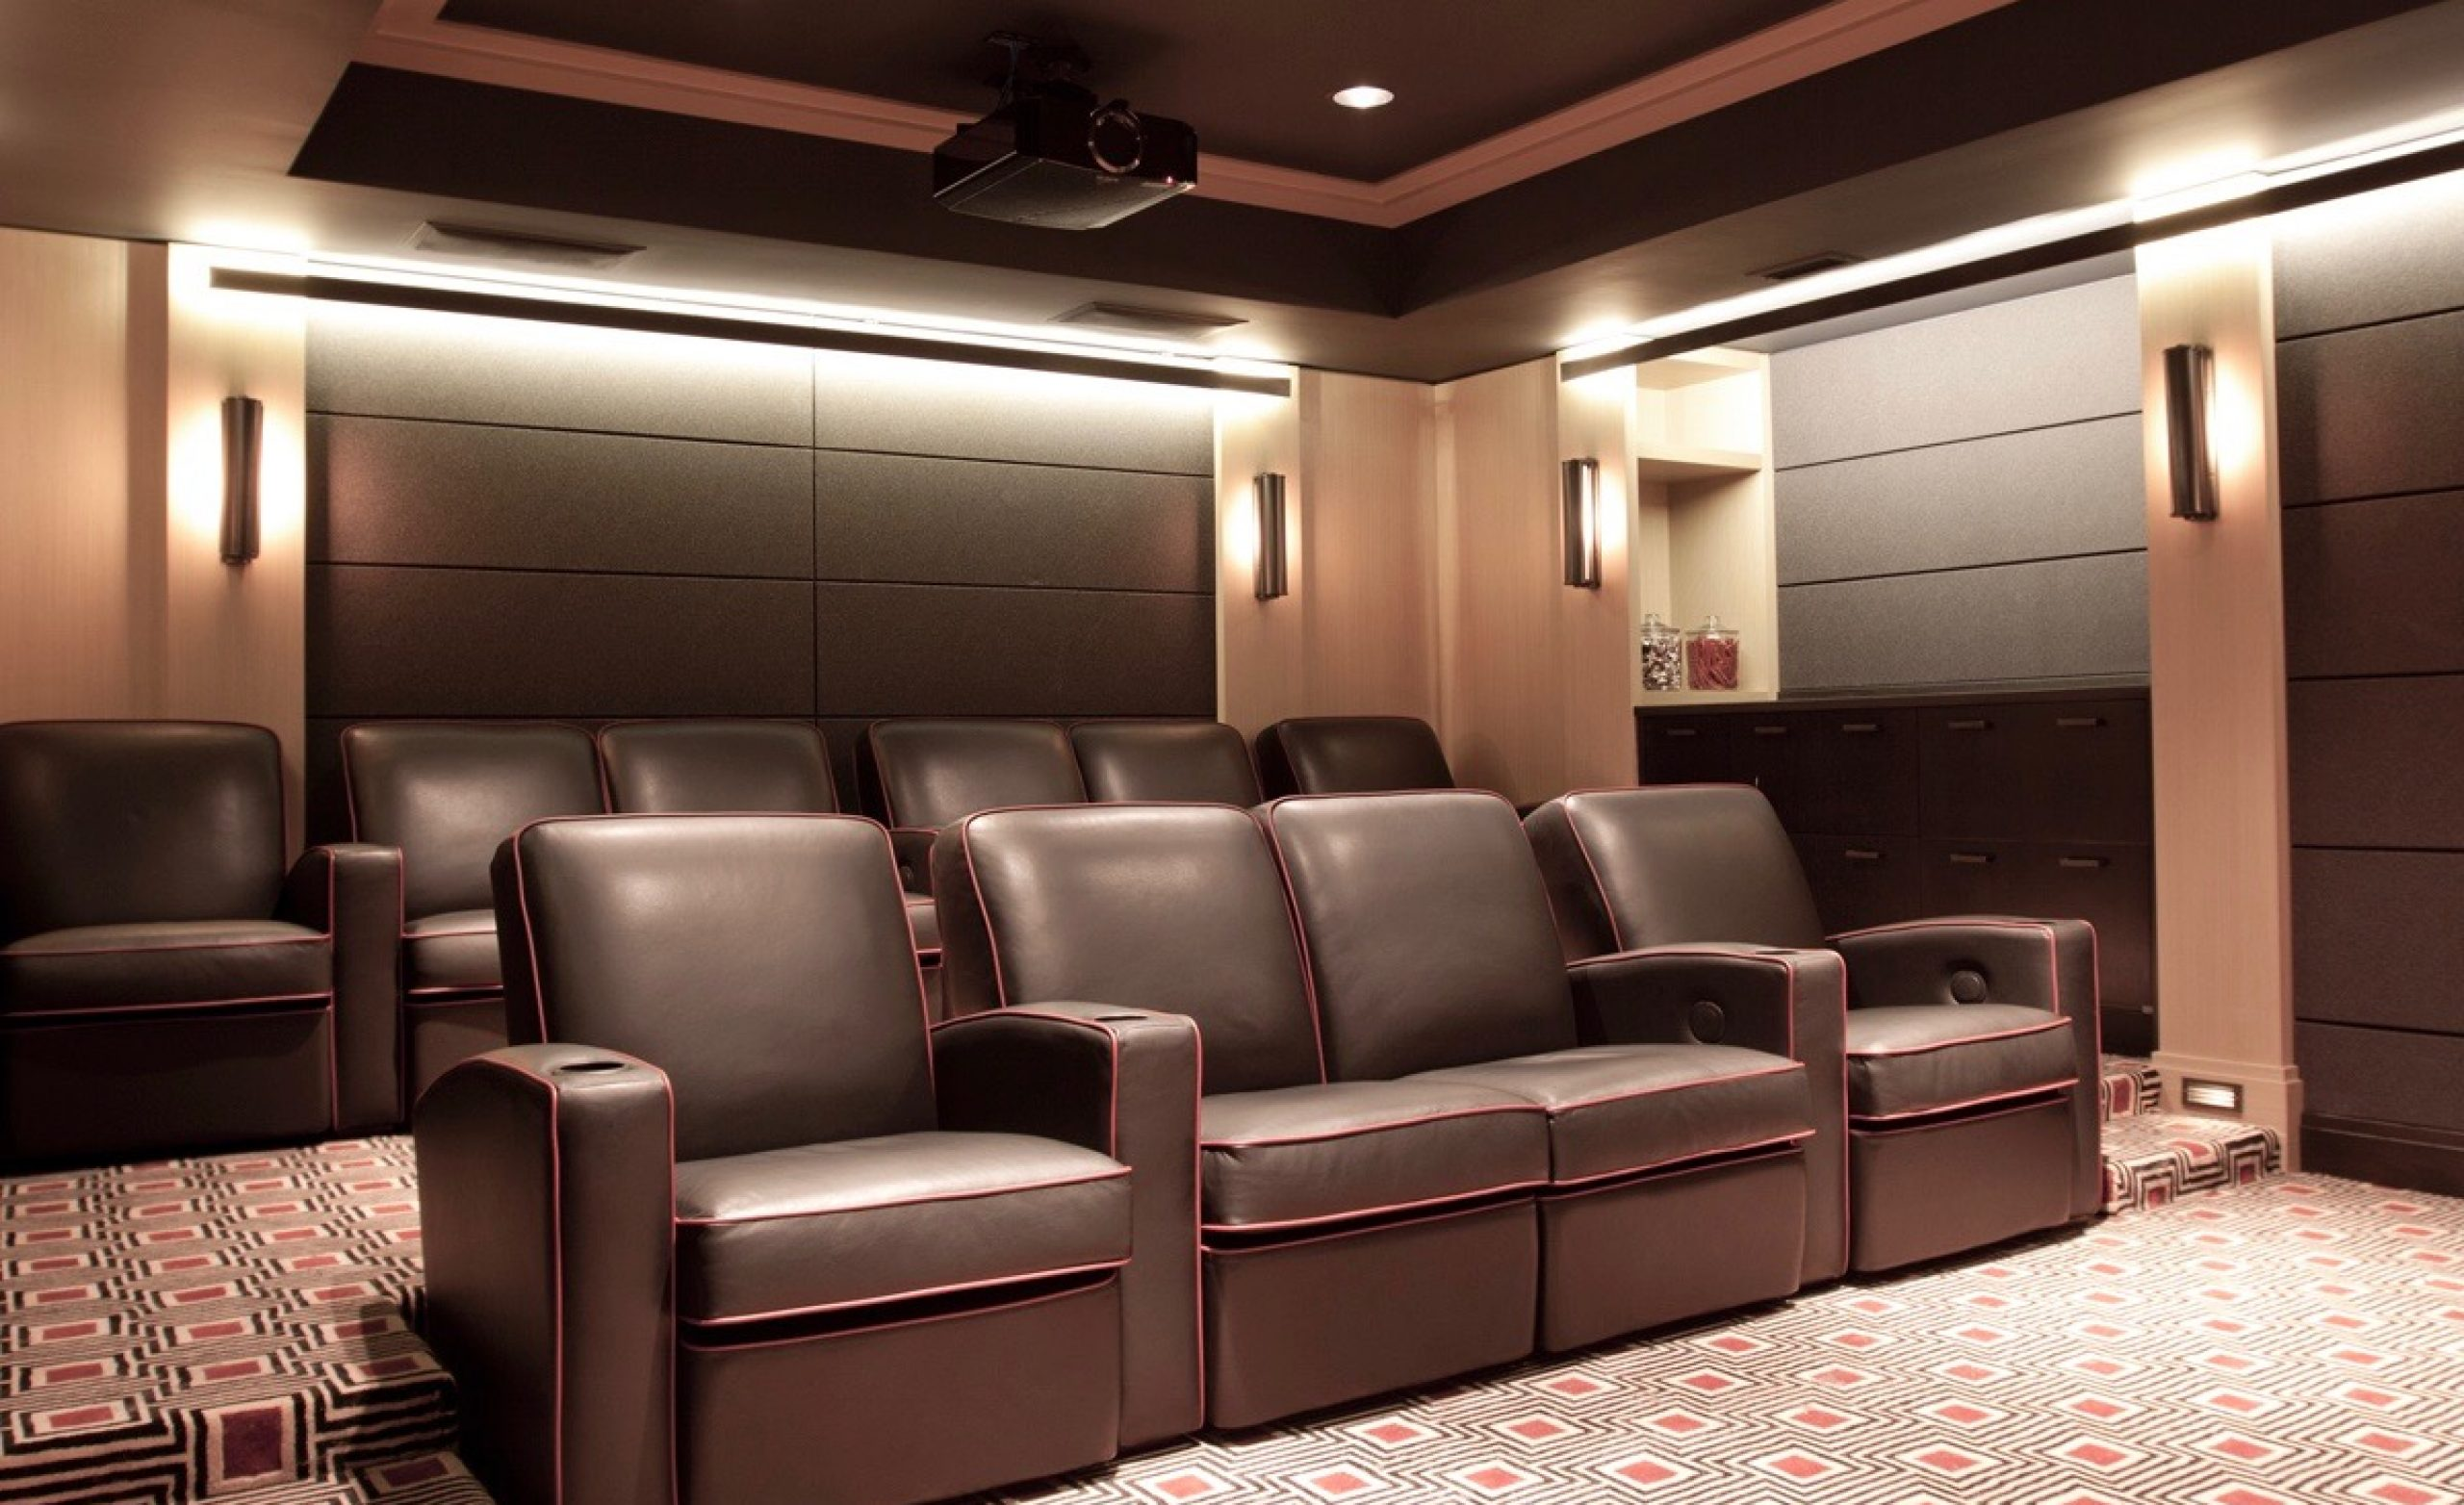 Home screening room with leather chairs